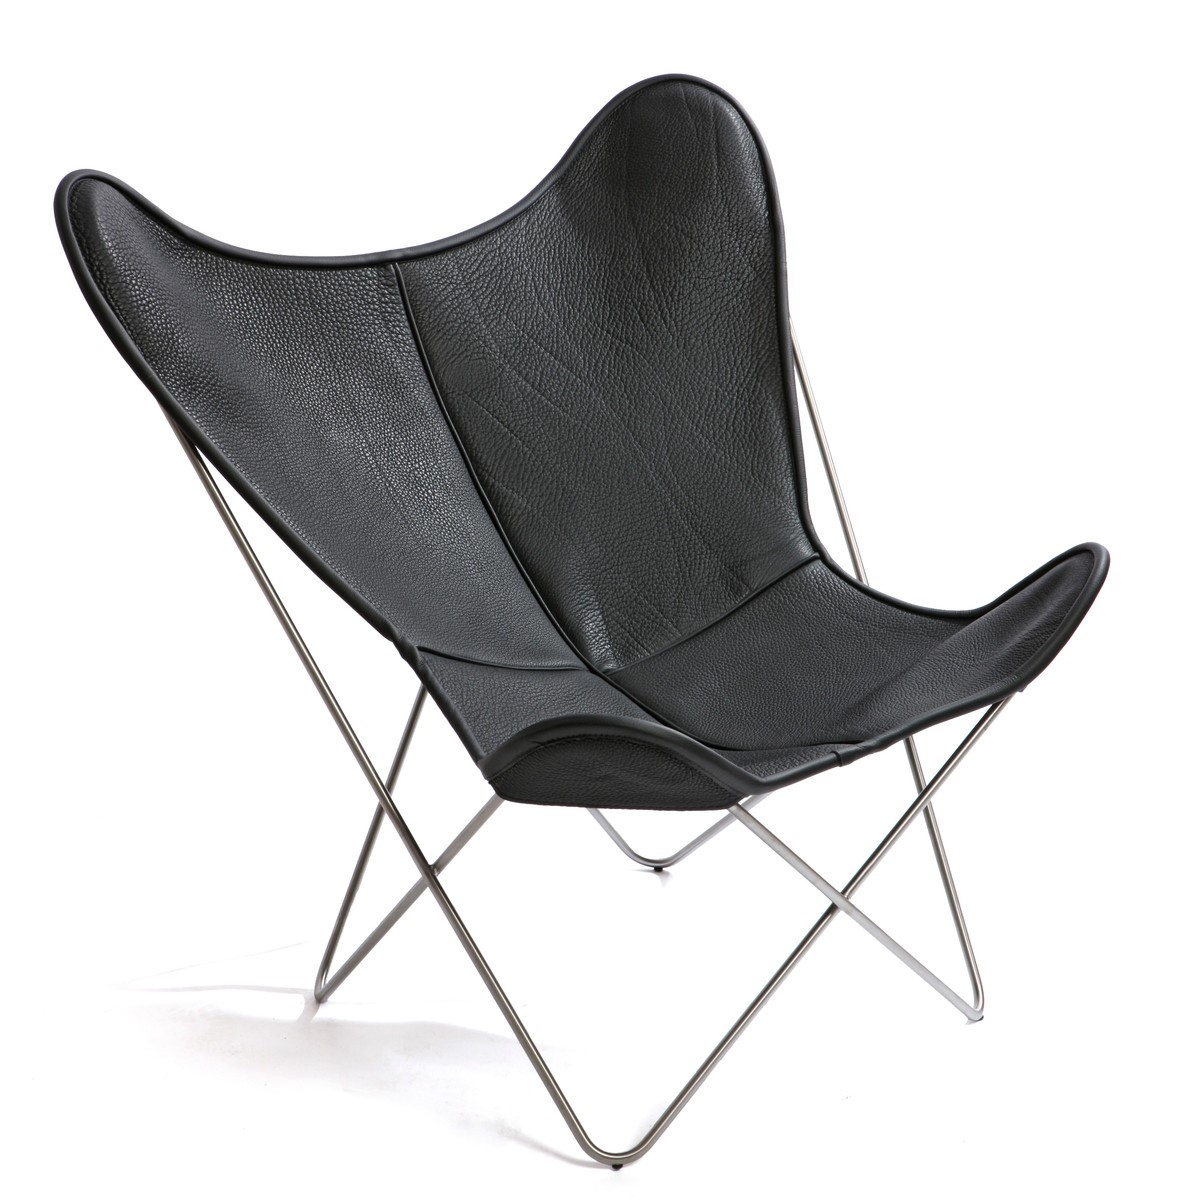 Manufaktur Plus křesla B.K.F. Hardoy Chair